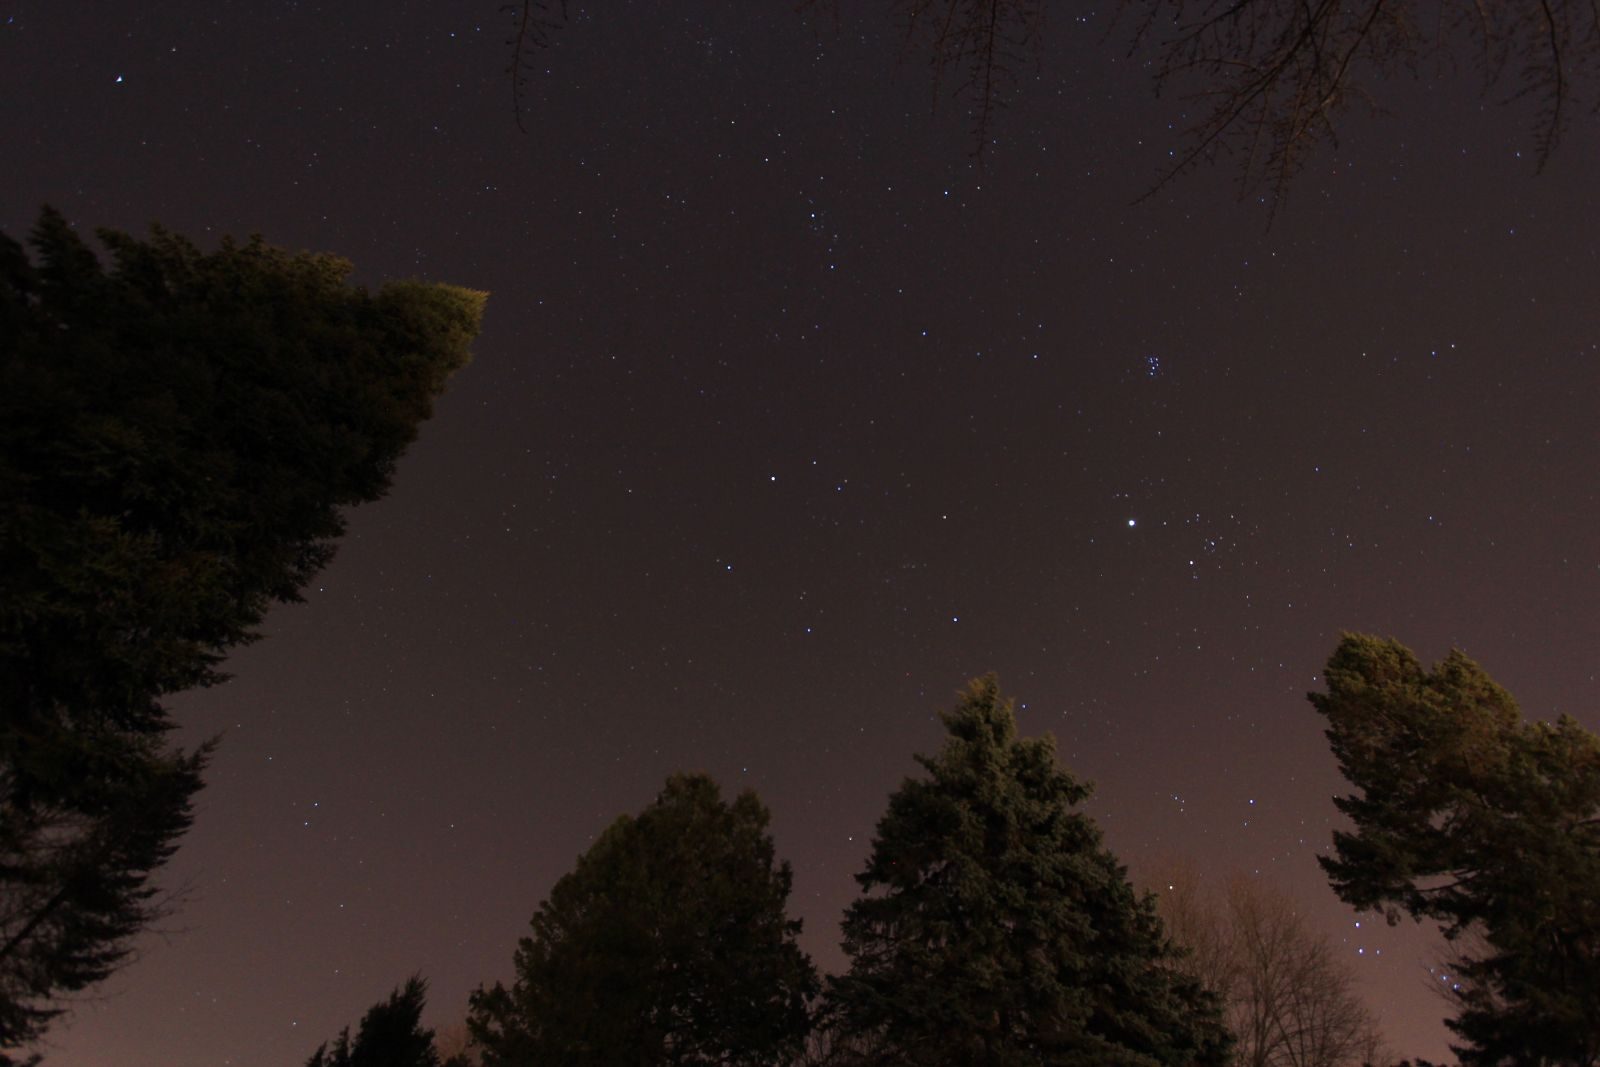 "The pink glow here is from light pollution. Photo taken with a DSLR and 10-22mm lens. The brightest ""star"" is the planet Jupiter, near the cluster of stars known as the Pleiades."